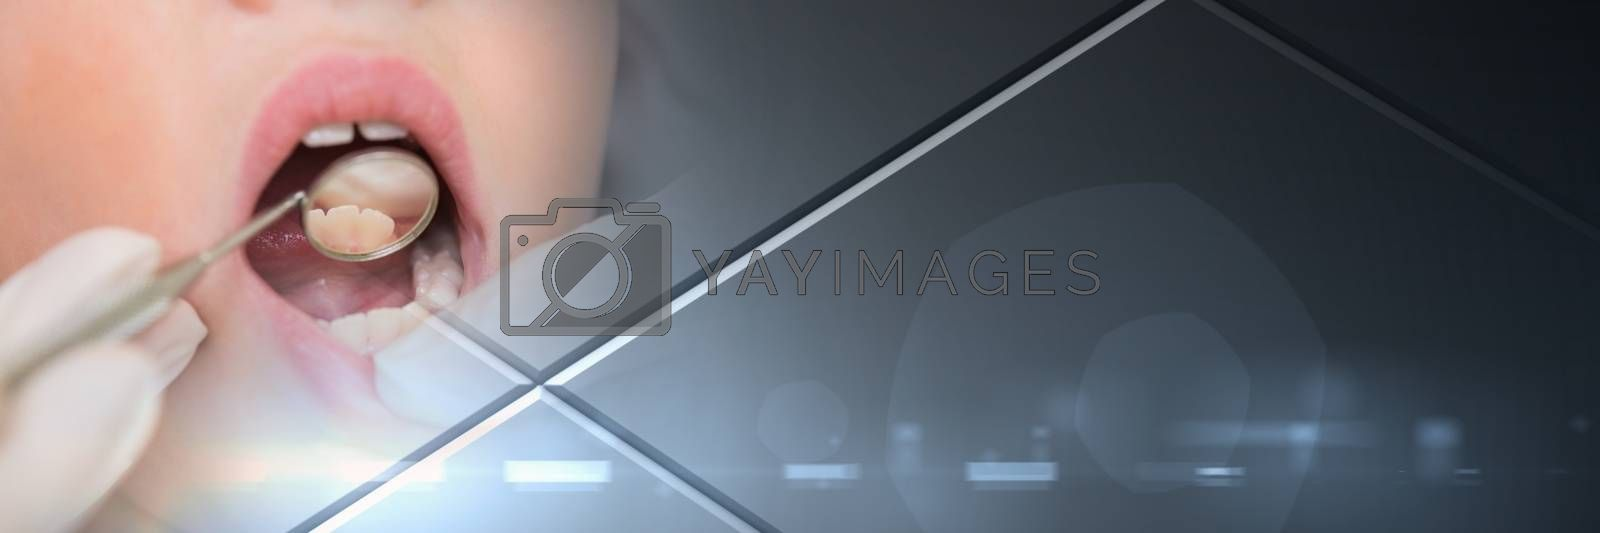 Digital composite of Close up of dentist working on patient's mouth and grey smart tech transition